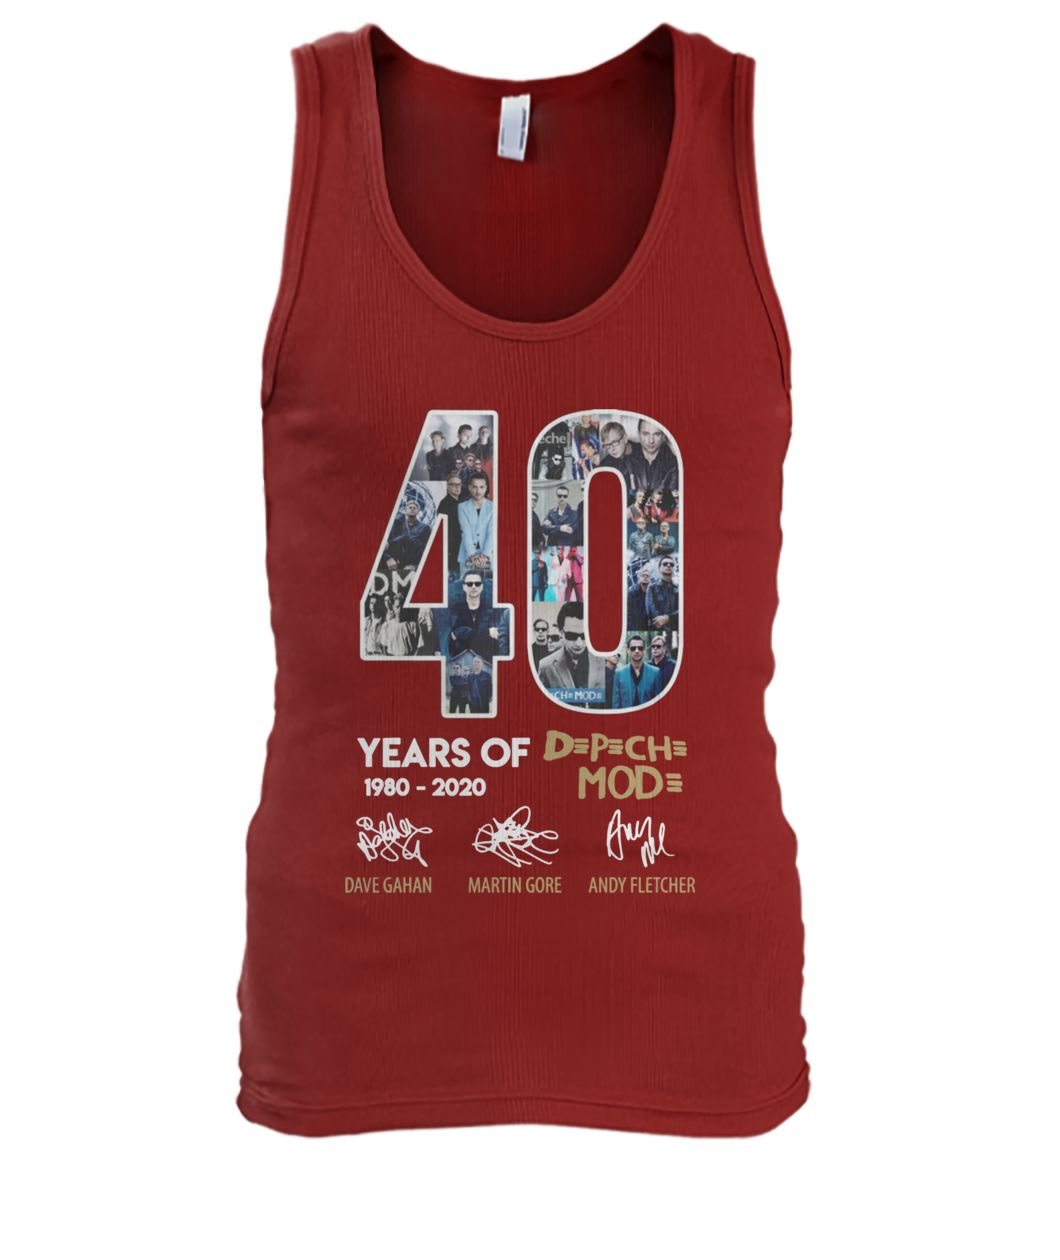 40 years of depeche mode 1980-2020 thank you for the memories signature men's tank top